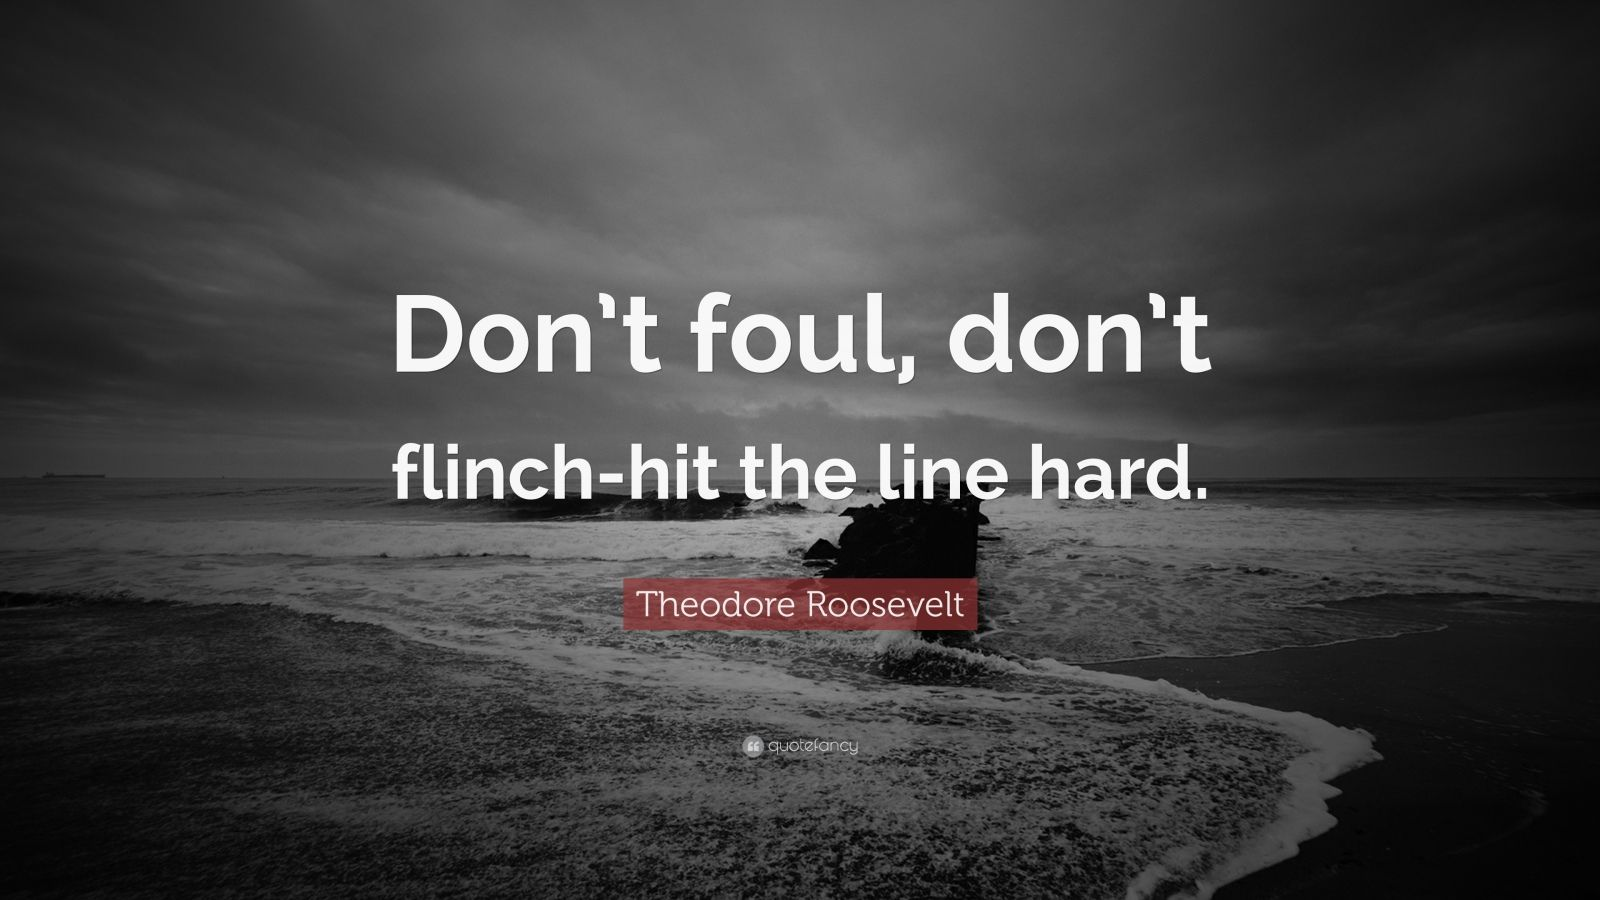 Theodore Roosevelt Quotes New Theodore Roosevelt Quotes 100 Wallpapers  Quotefancy